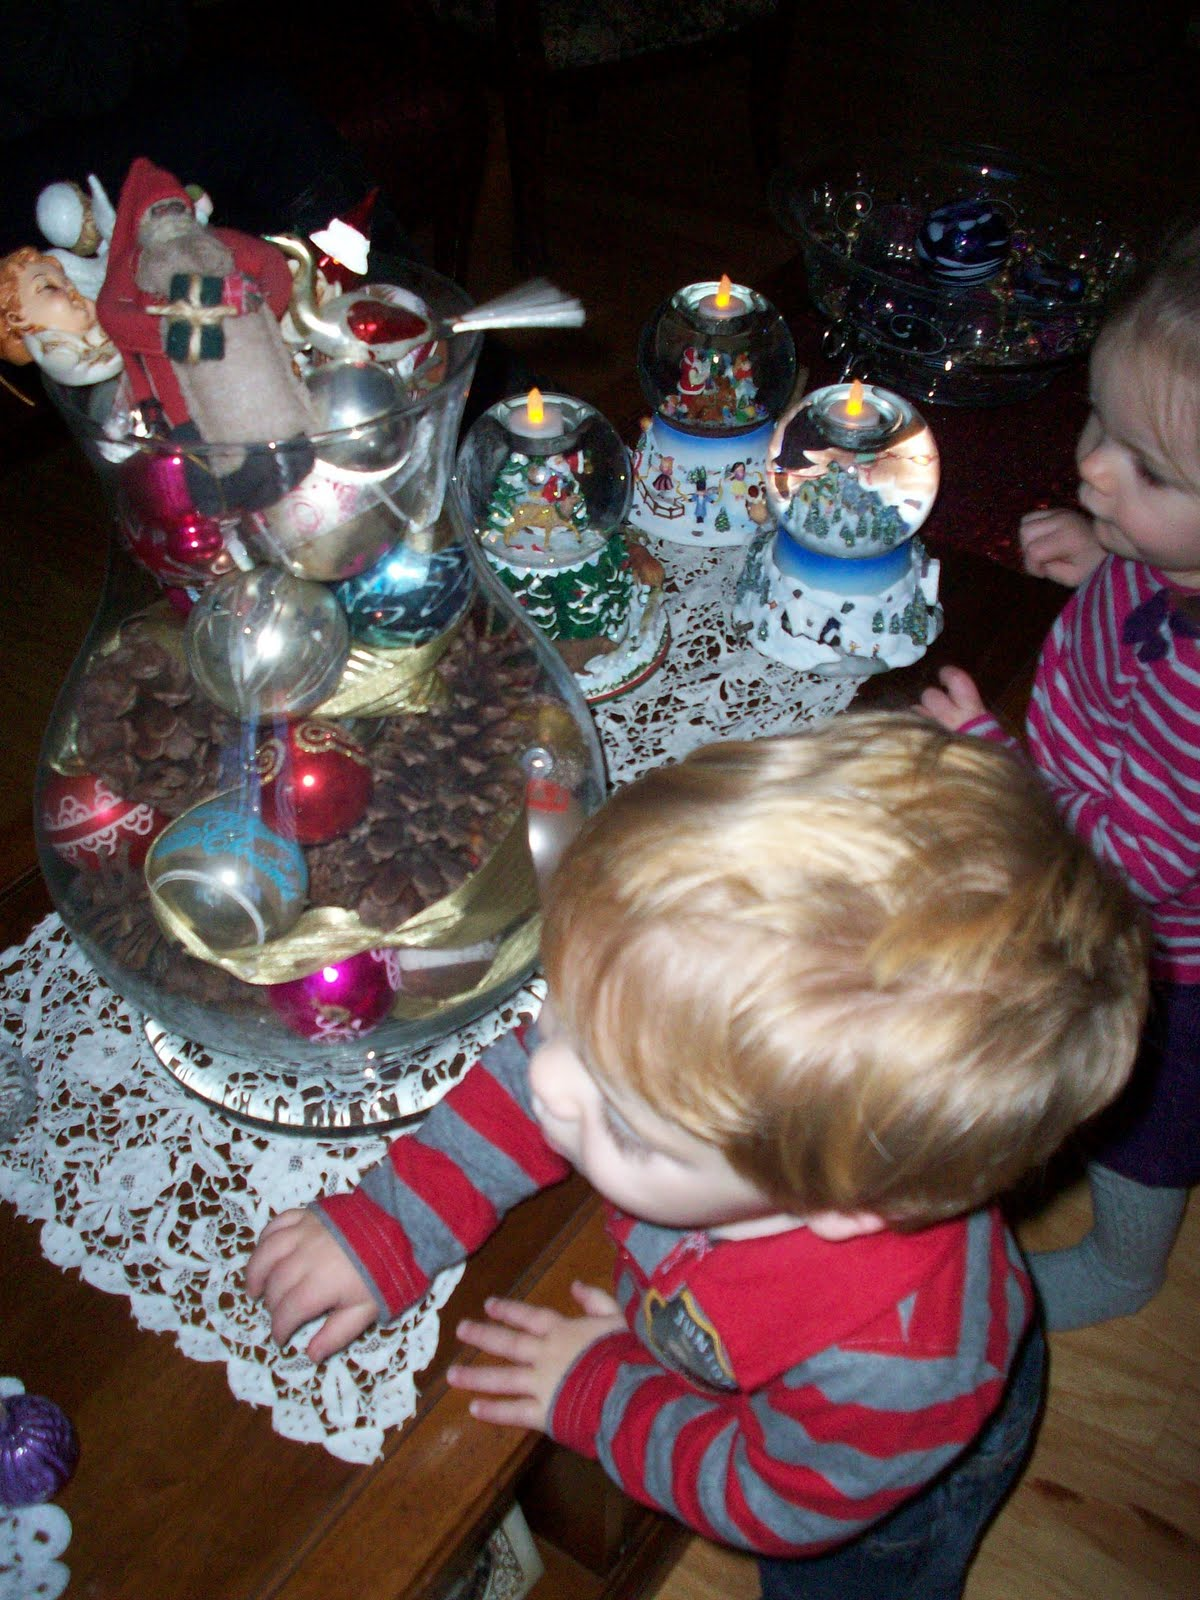 There Were Snow Globes And Ornaments Hanging On Things The Bits Were  Enthralled